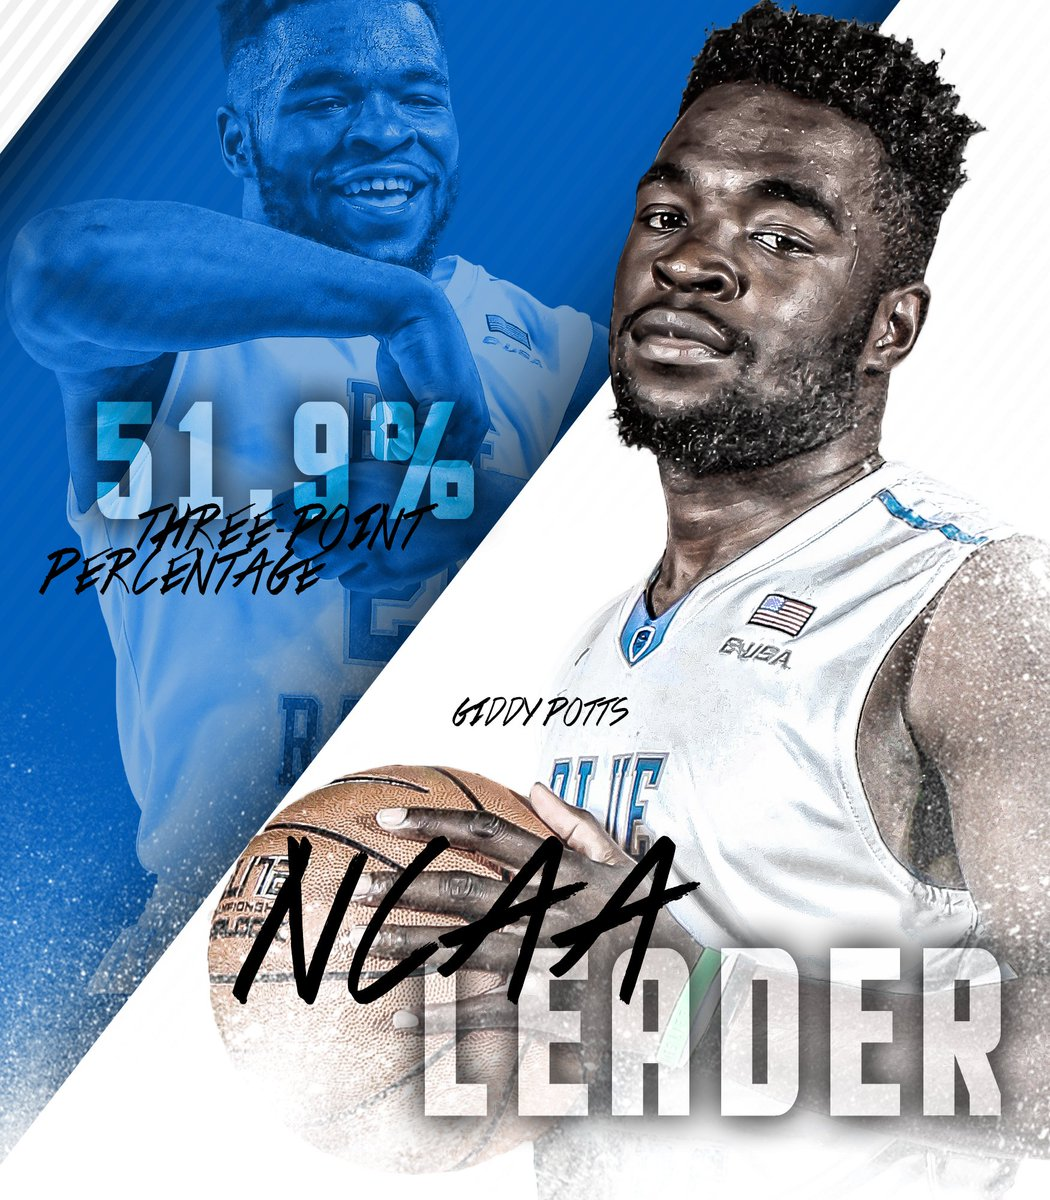 #DYK: @MT_MBB's Giddy Potts is the NCAA leader in three-point percentage. #BlueRaiders #TruePride https://t.co/vSA4C6QQkE